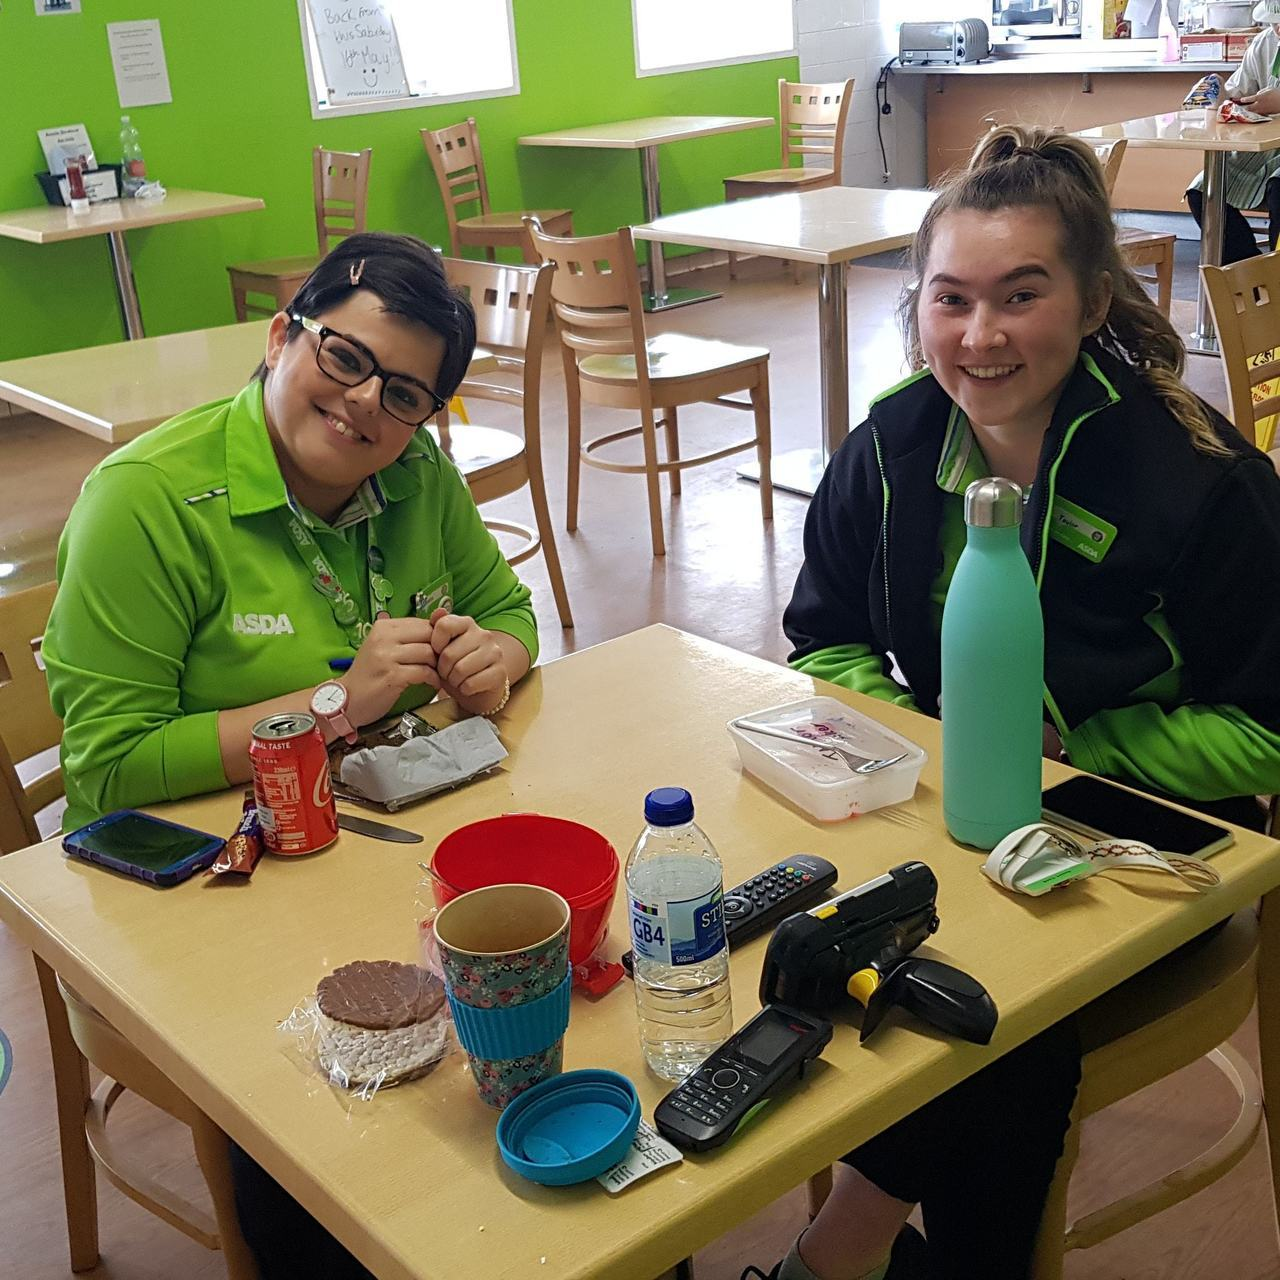 Well done Emma and Taylor | Asda Warrington